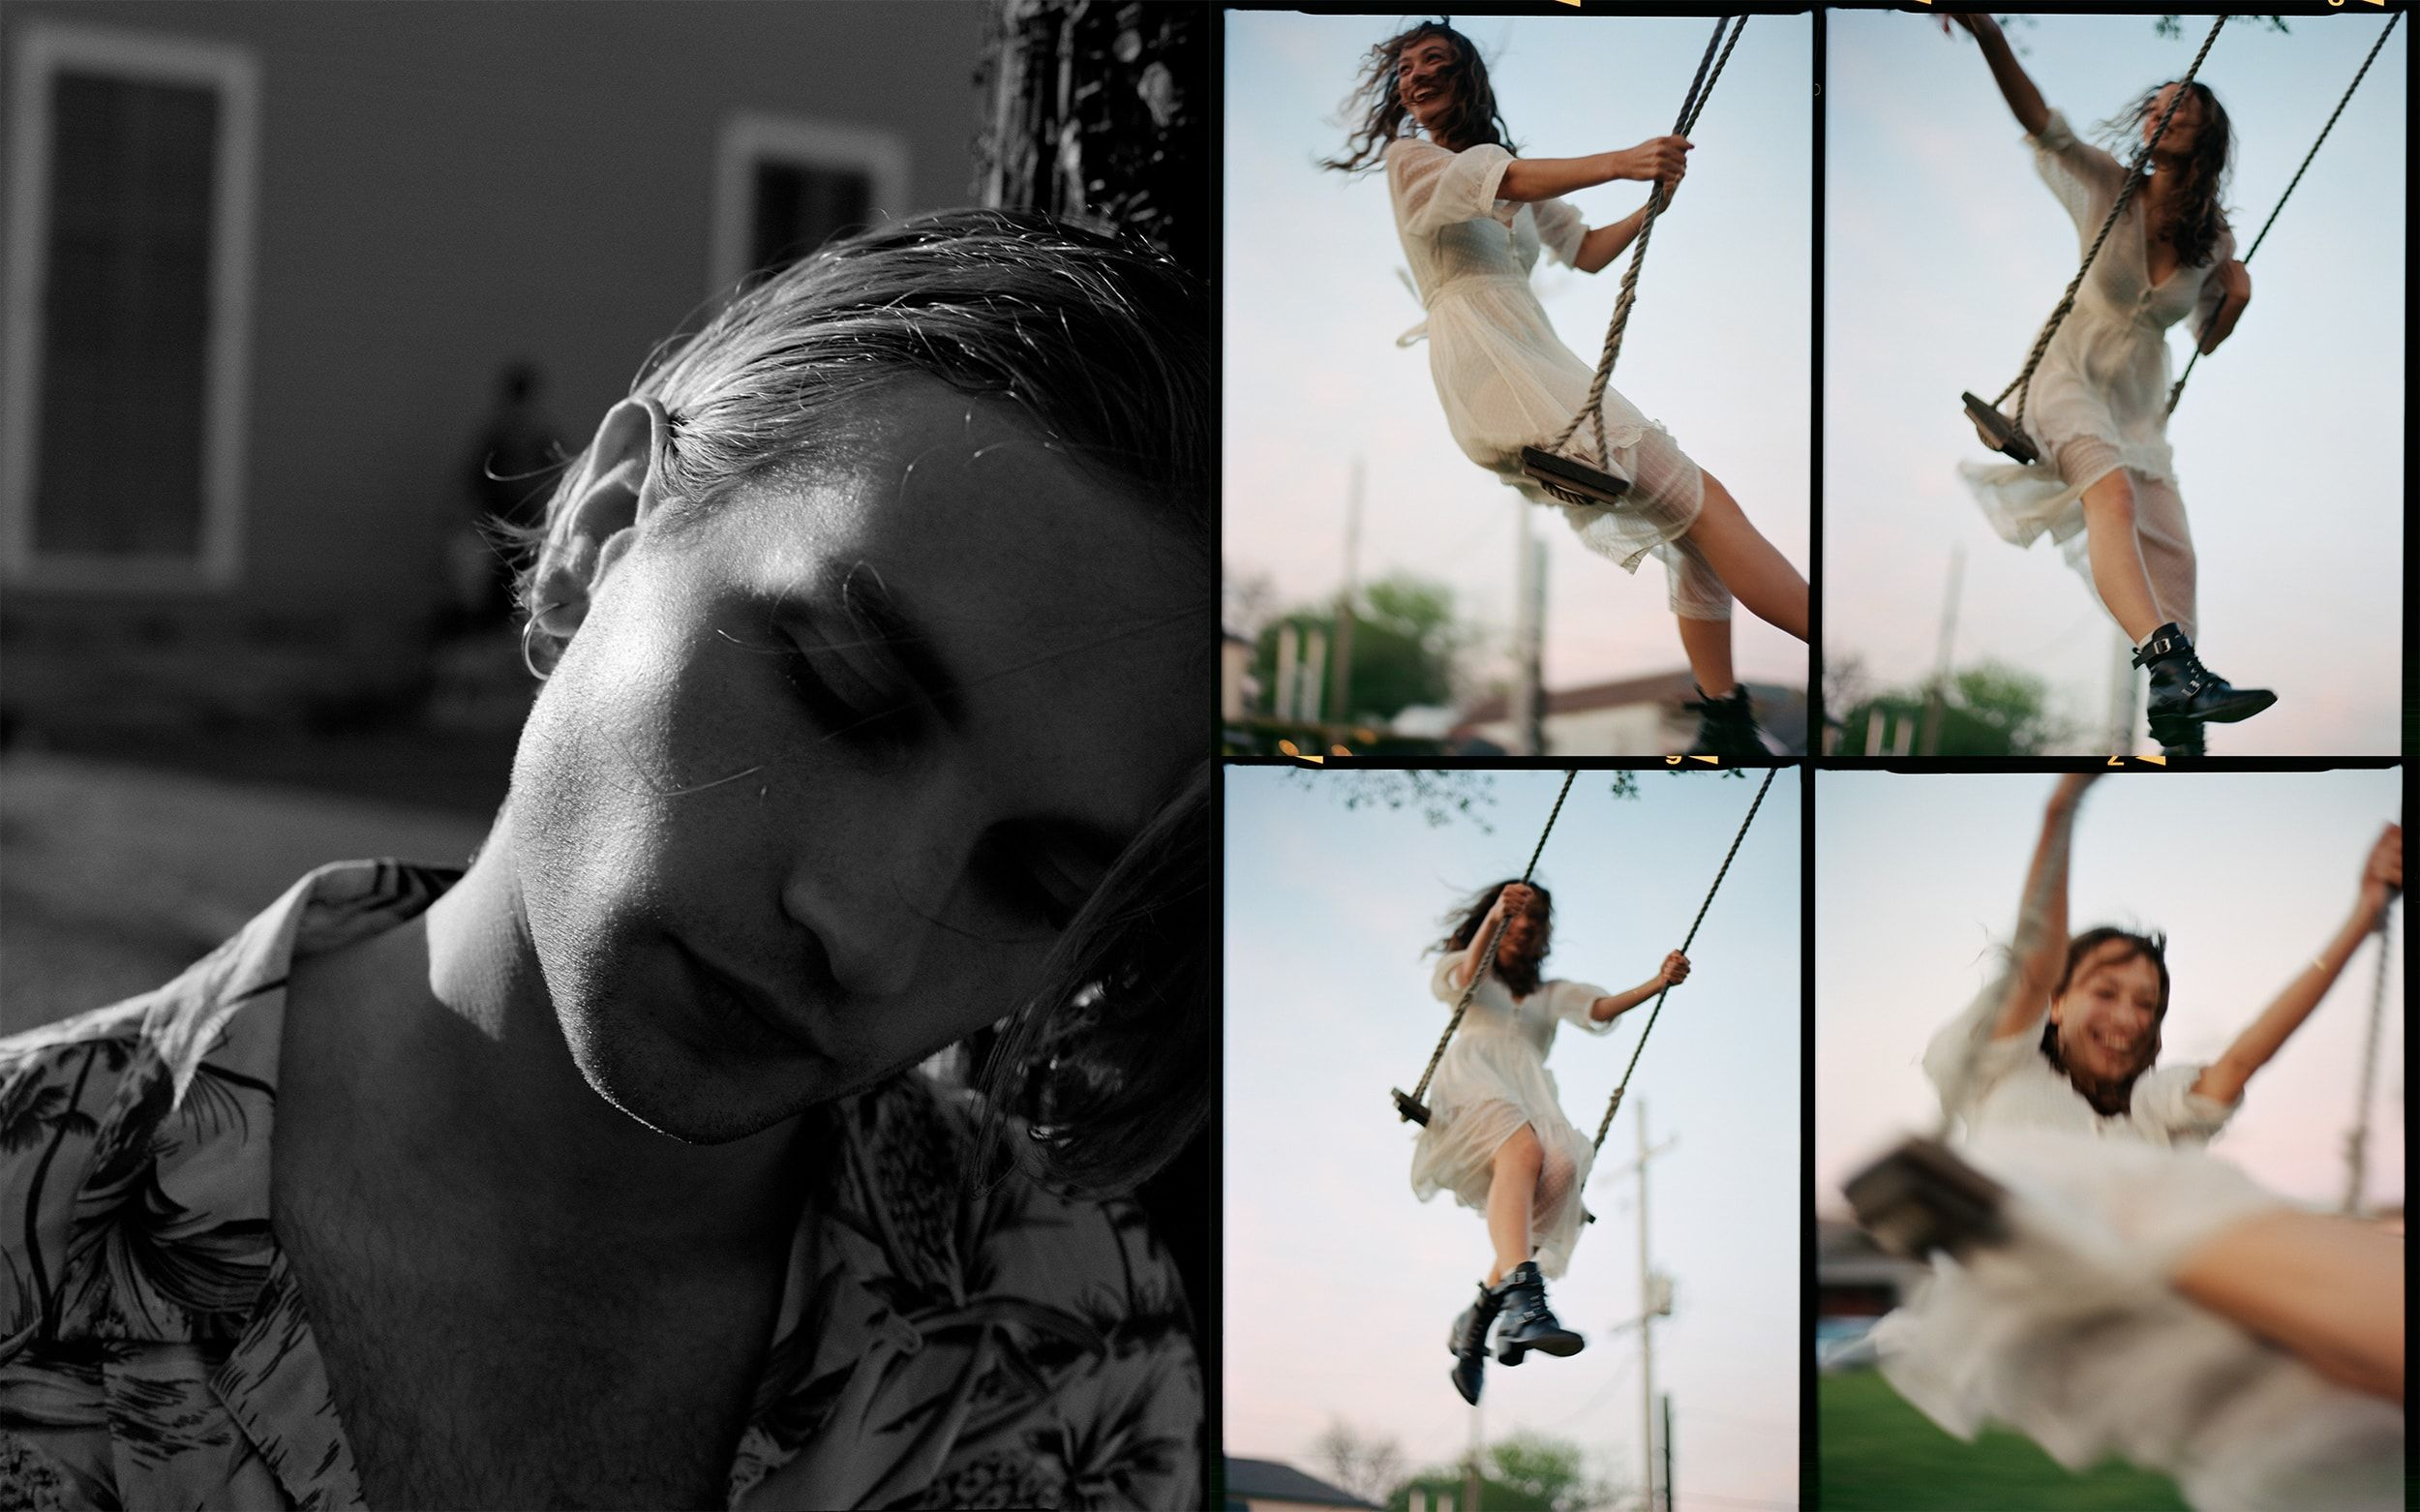 Two photographs from our Lost In New Orleans campaign, depicting a close-up black-and-white portrait of a young man in a graphic Hawaiian shirt, and a young woman wearing a white dress swinging on a swing.